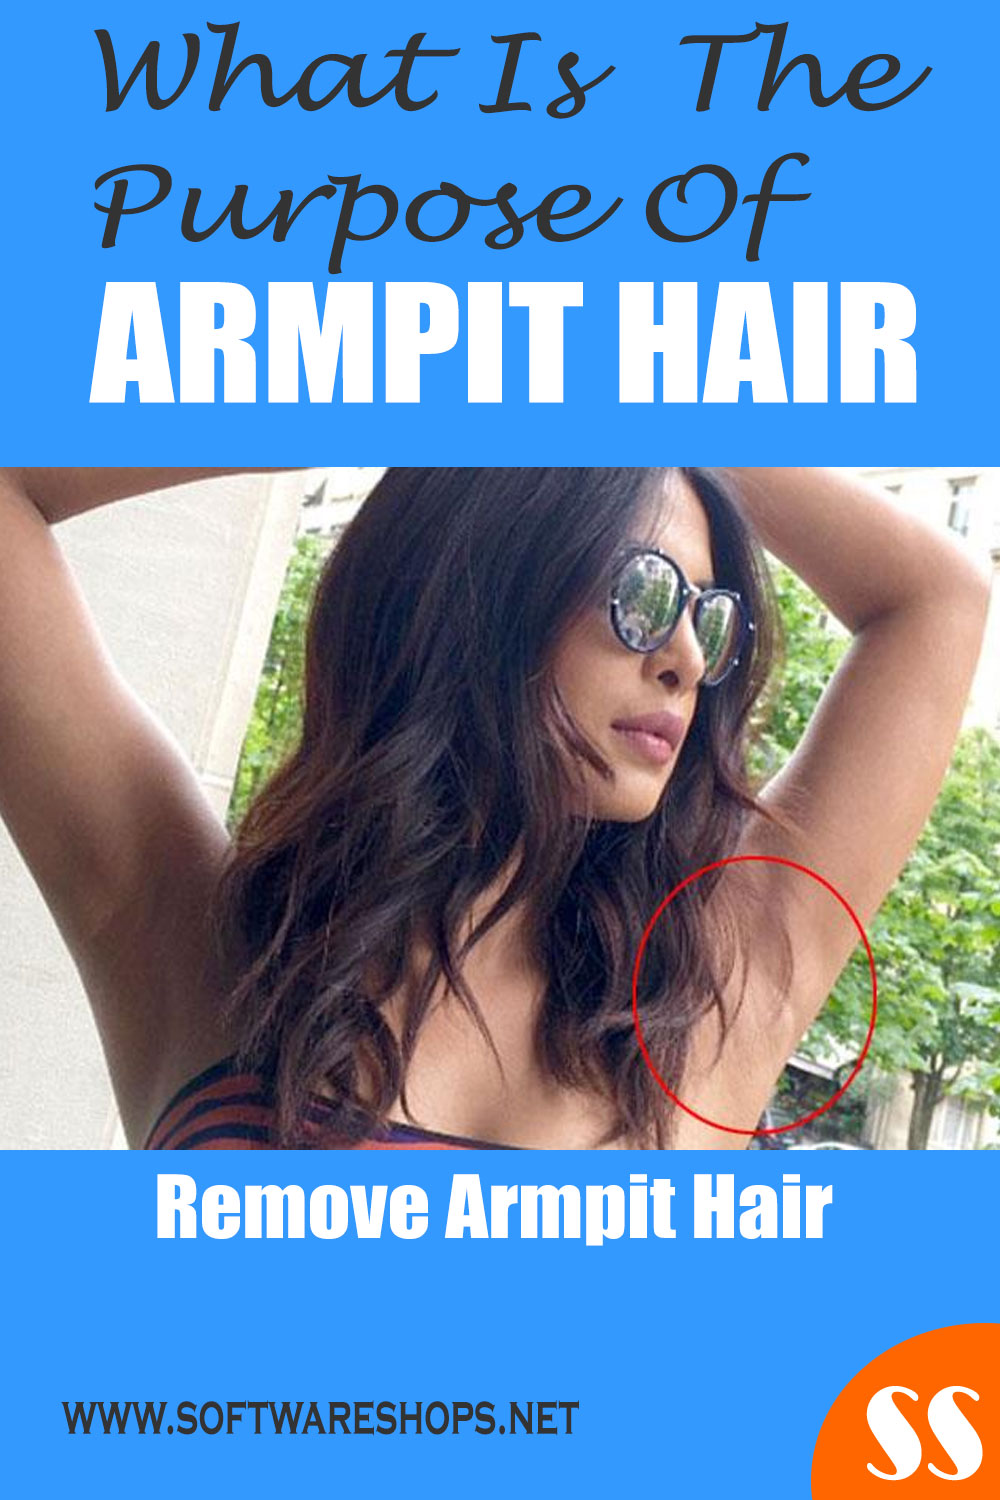 What is the purpose of armpit hair ? Remove armpit hair